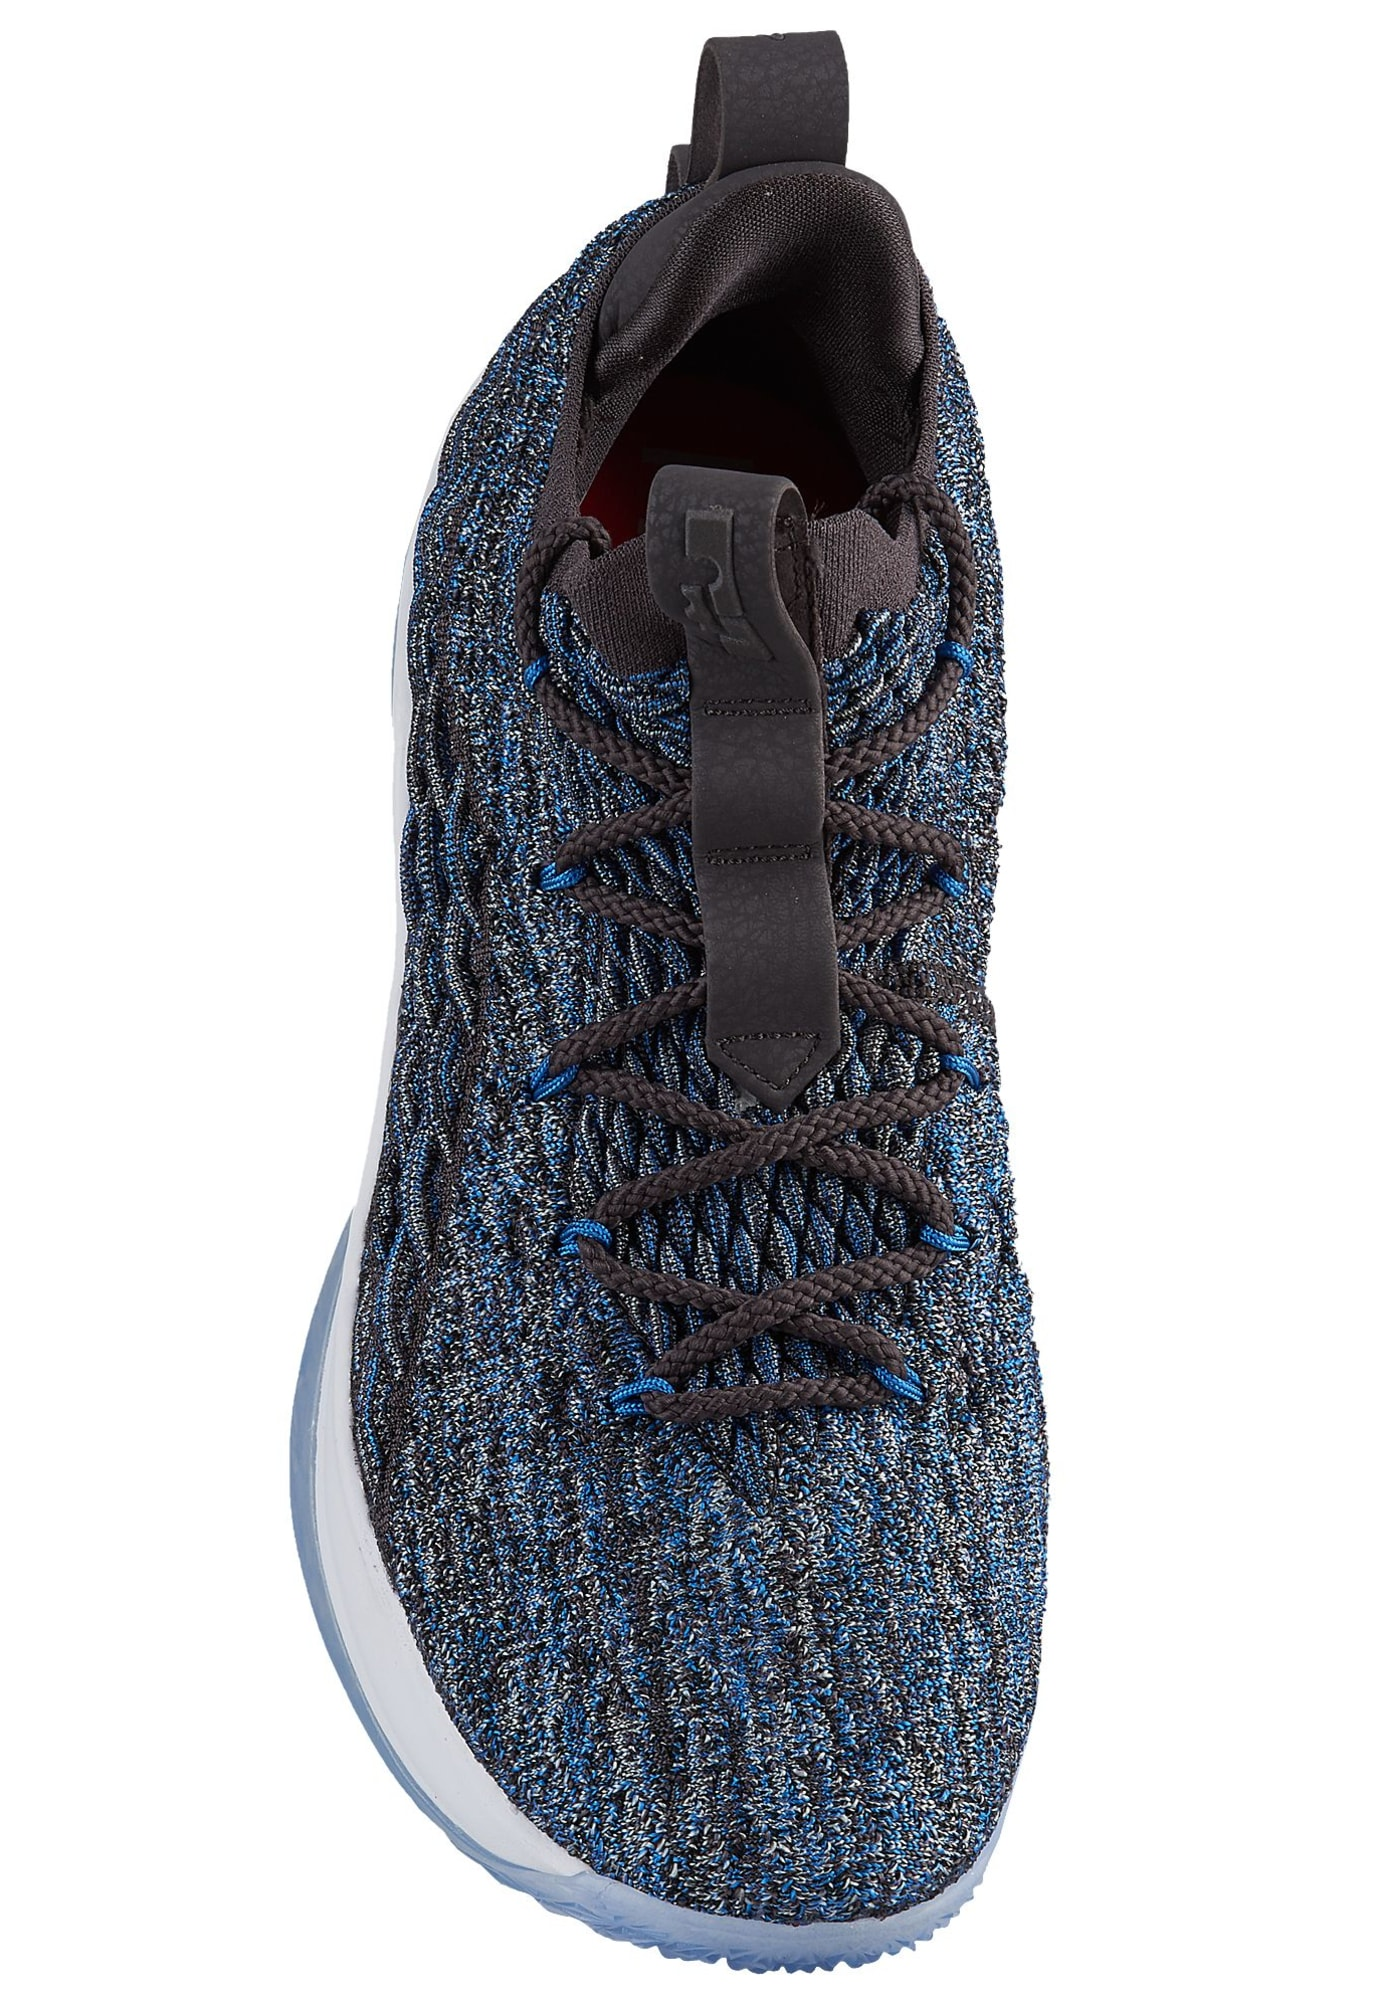 Nike LeBron 15 Low 'Signal Blue'